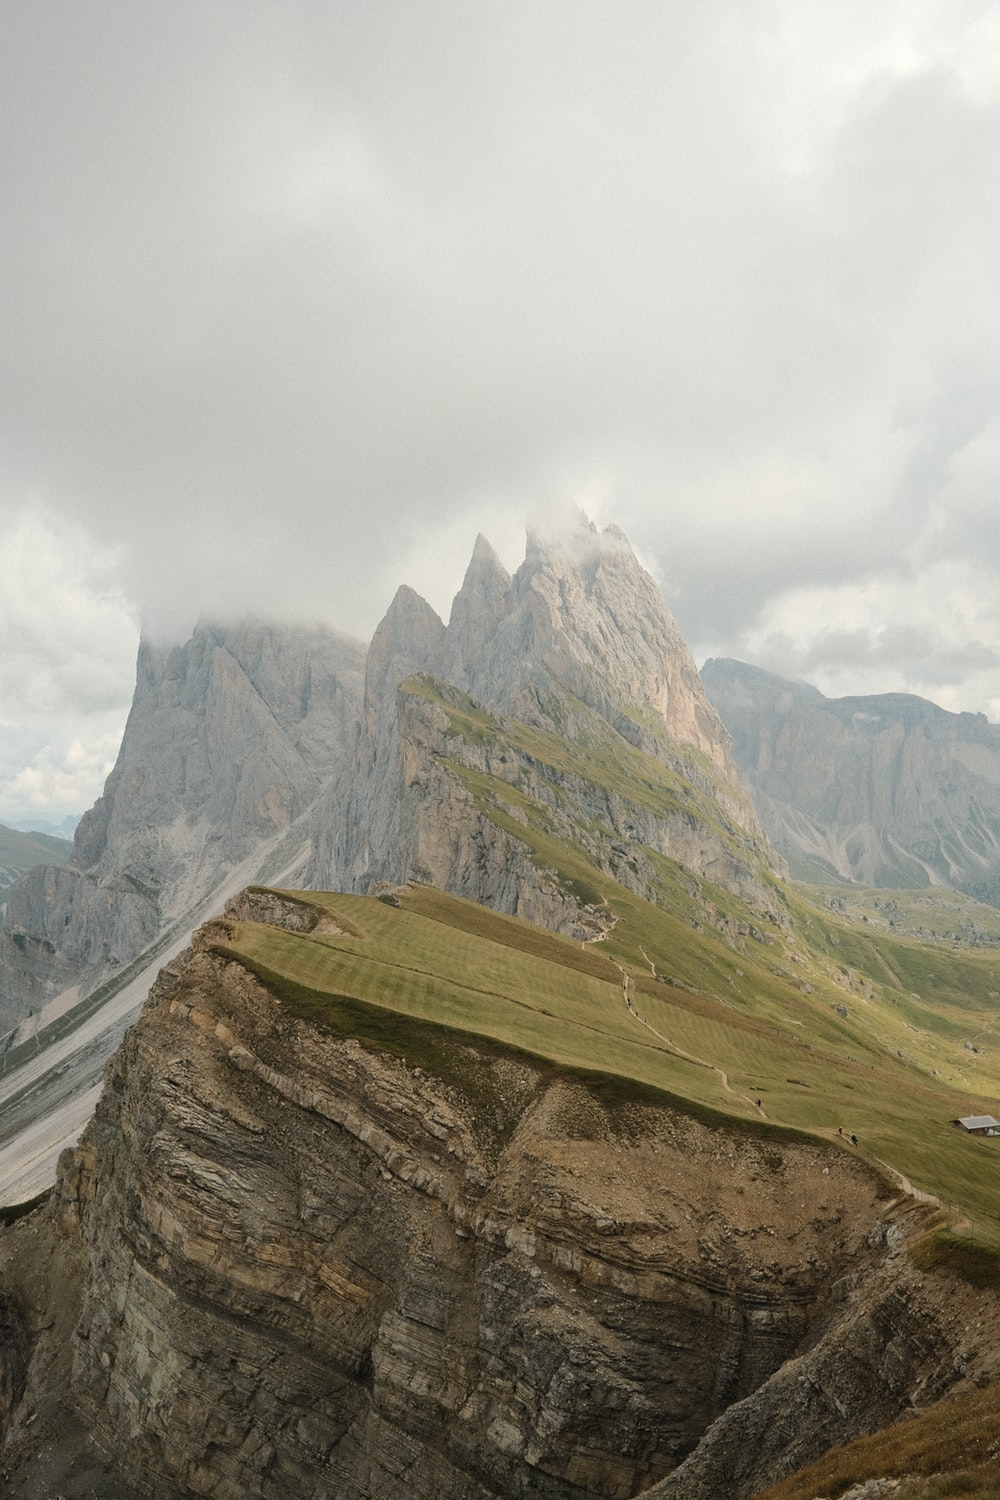 green and brown mountains under white cloudy sky during daytime